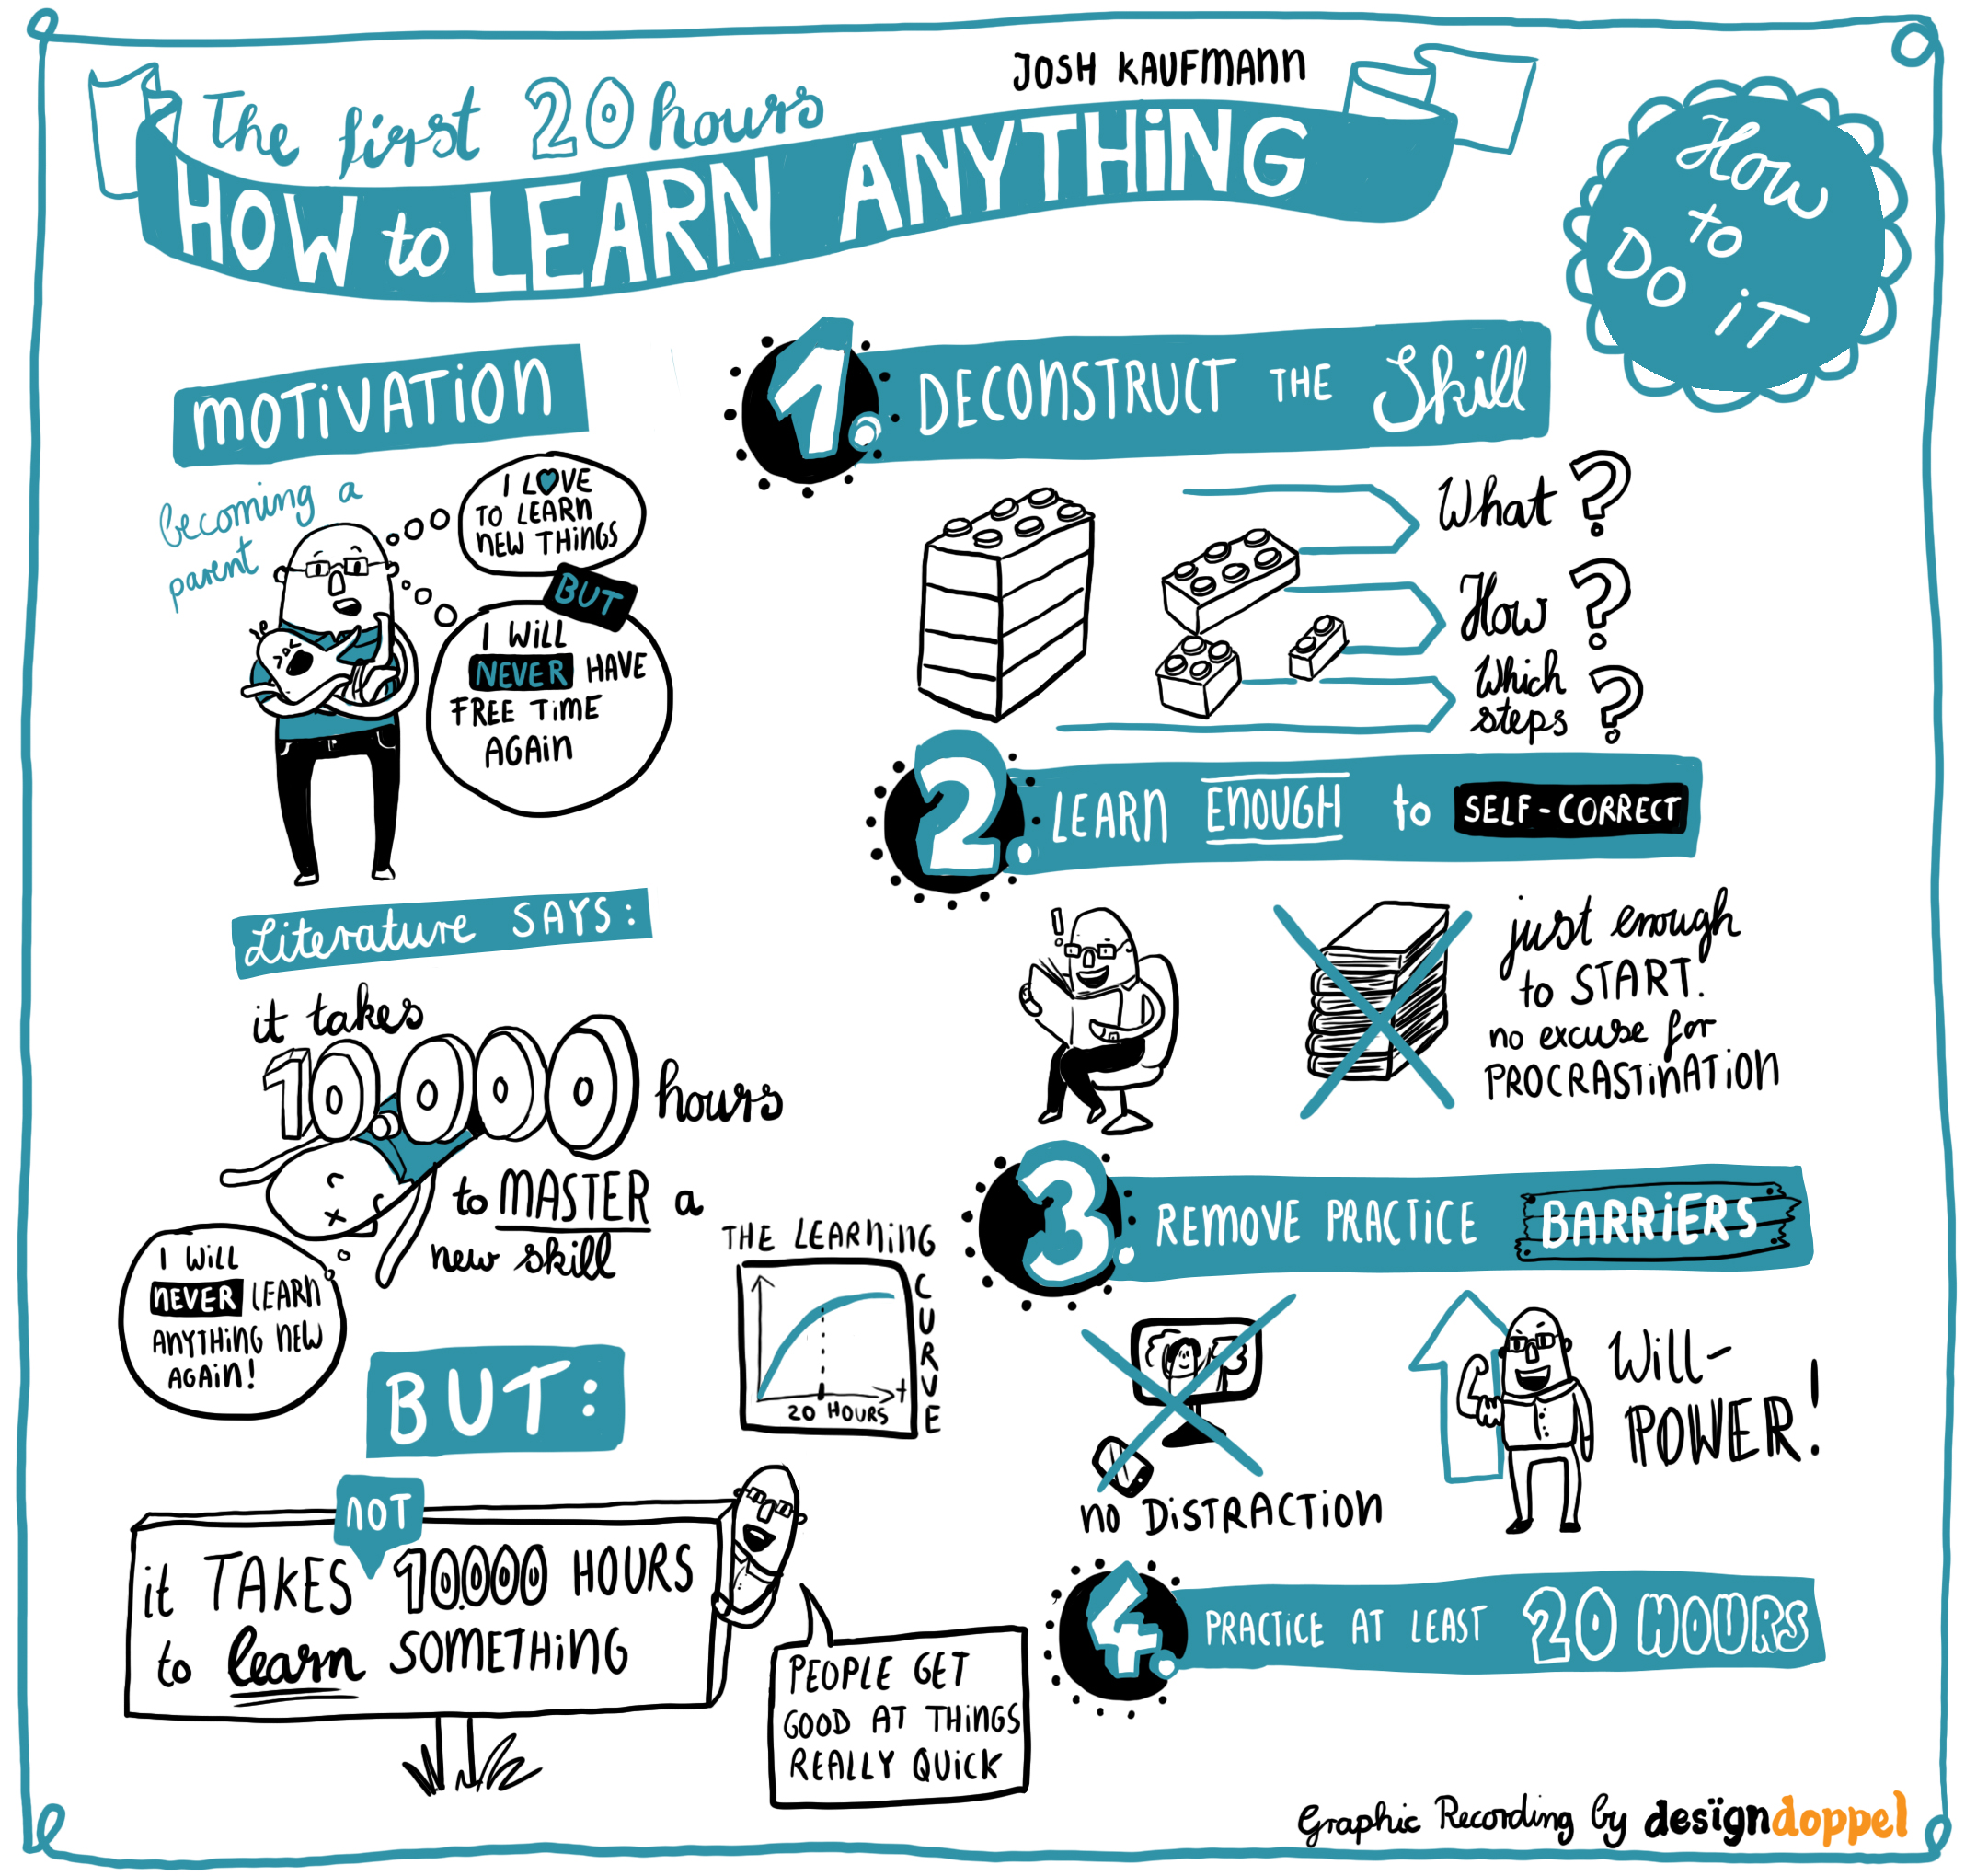 Graphic Recording digital Josh Kaufmann 20 hours learning